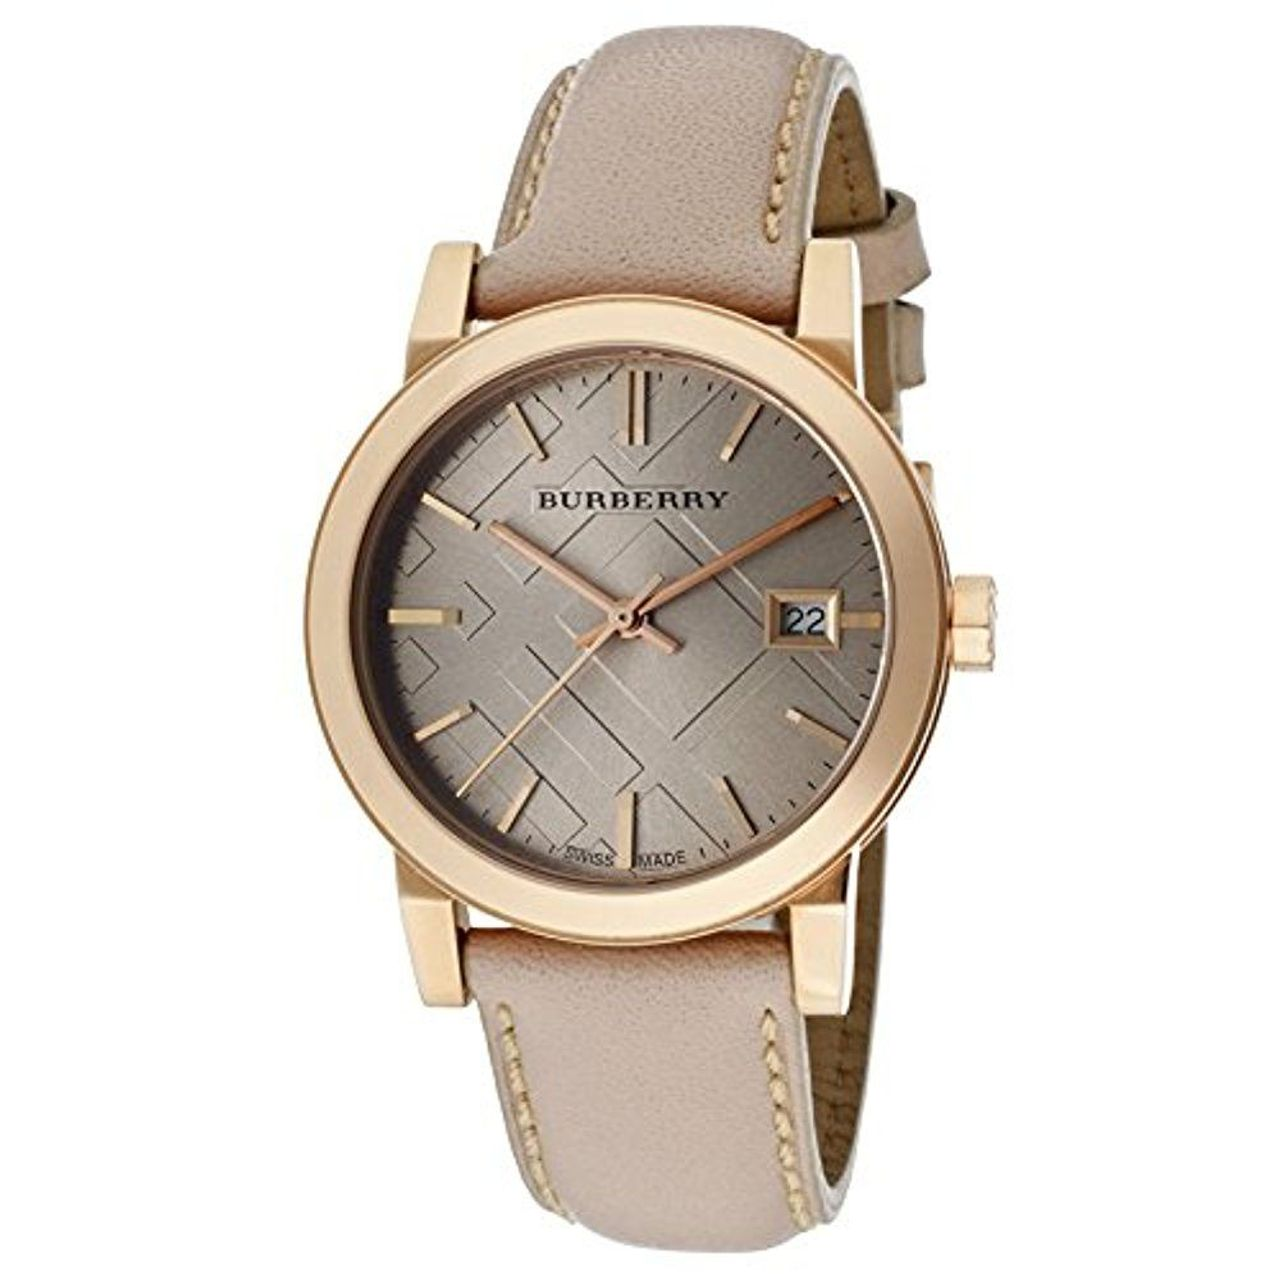 Burberry bu9109 womens beige dial quartz watch with leather strap ebay for Burberry watches